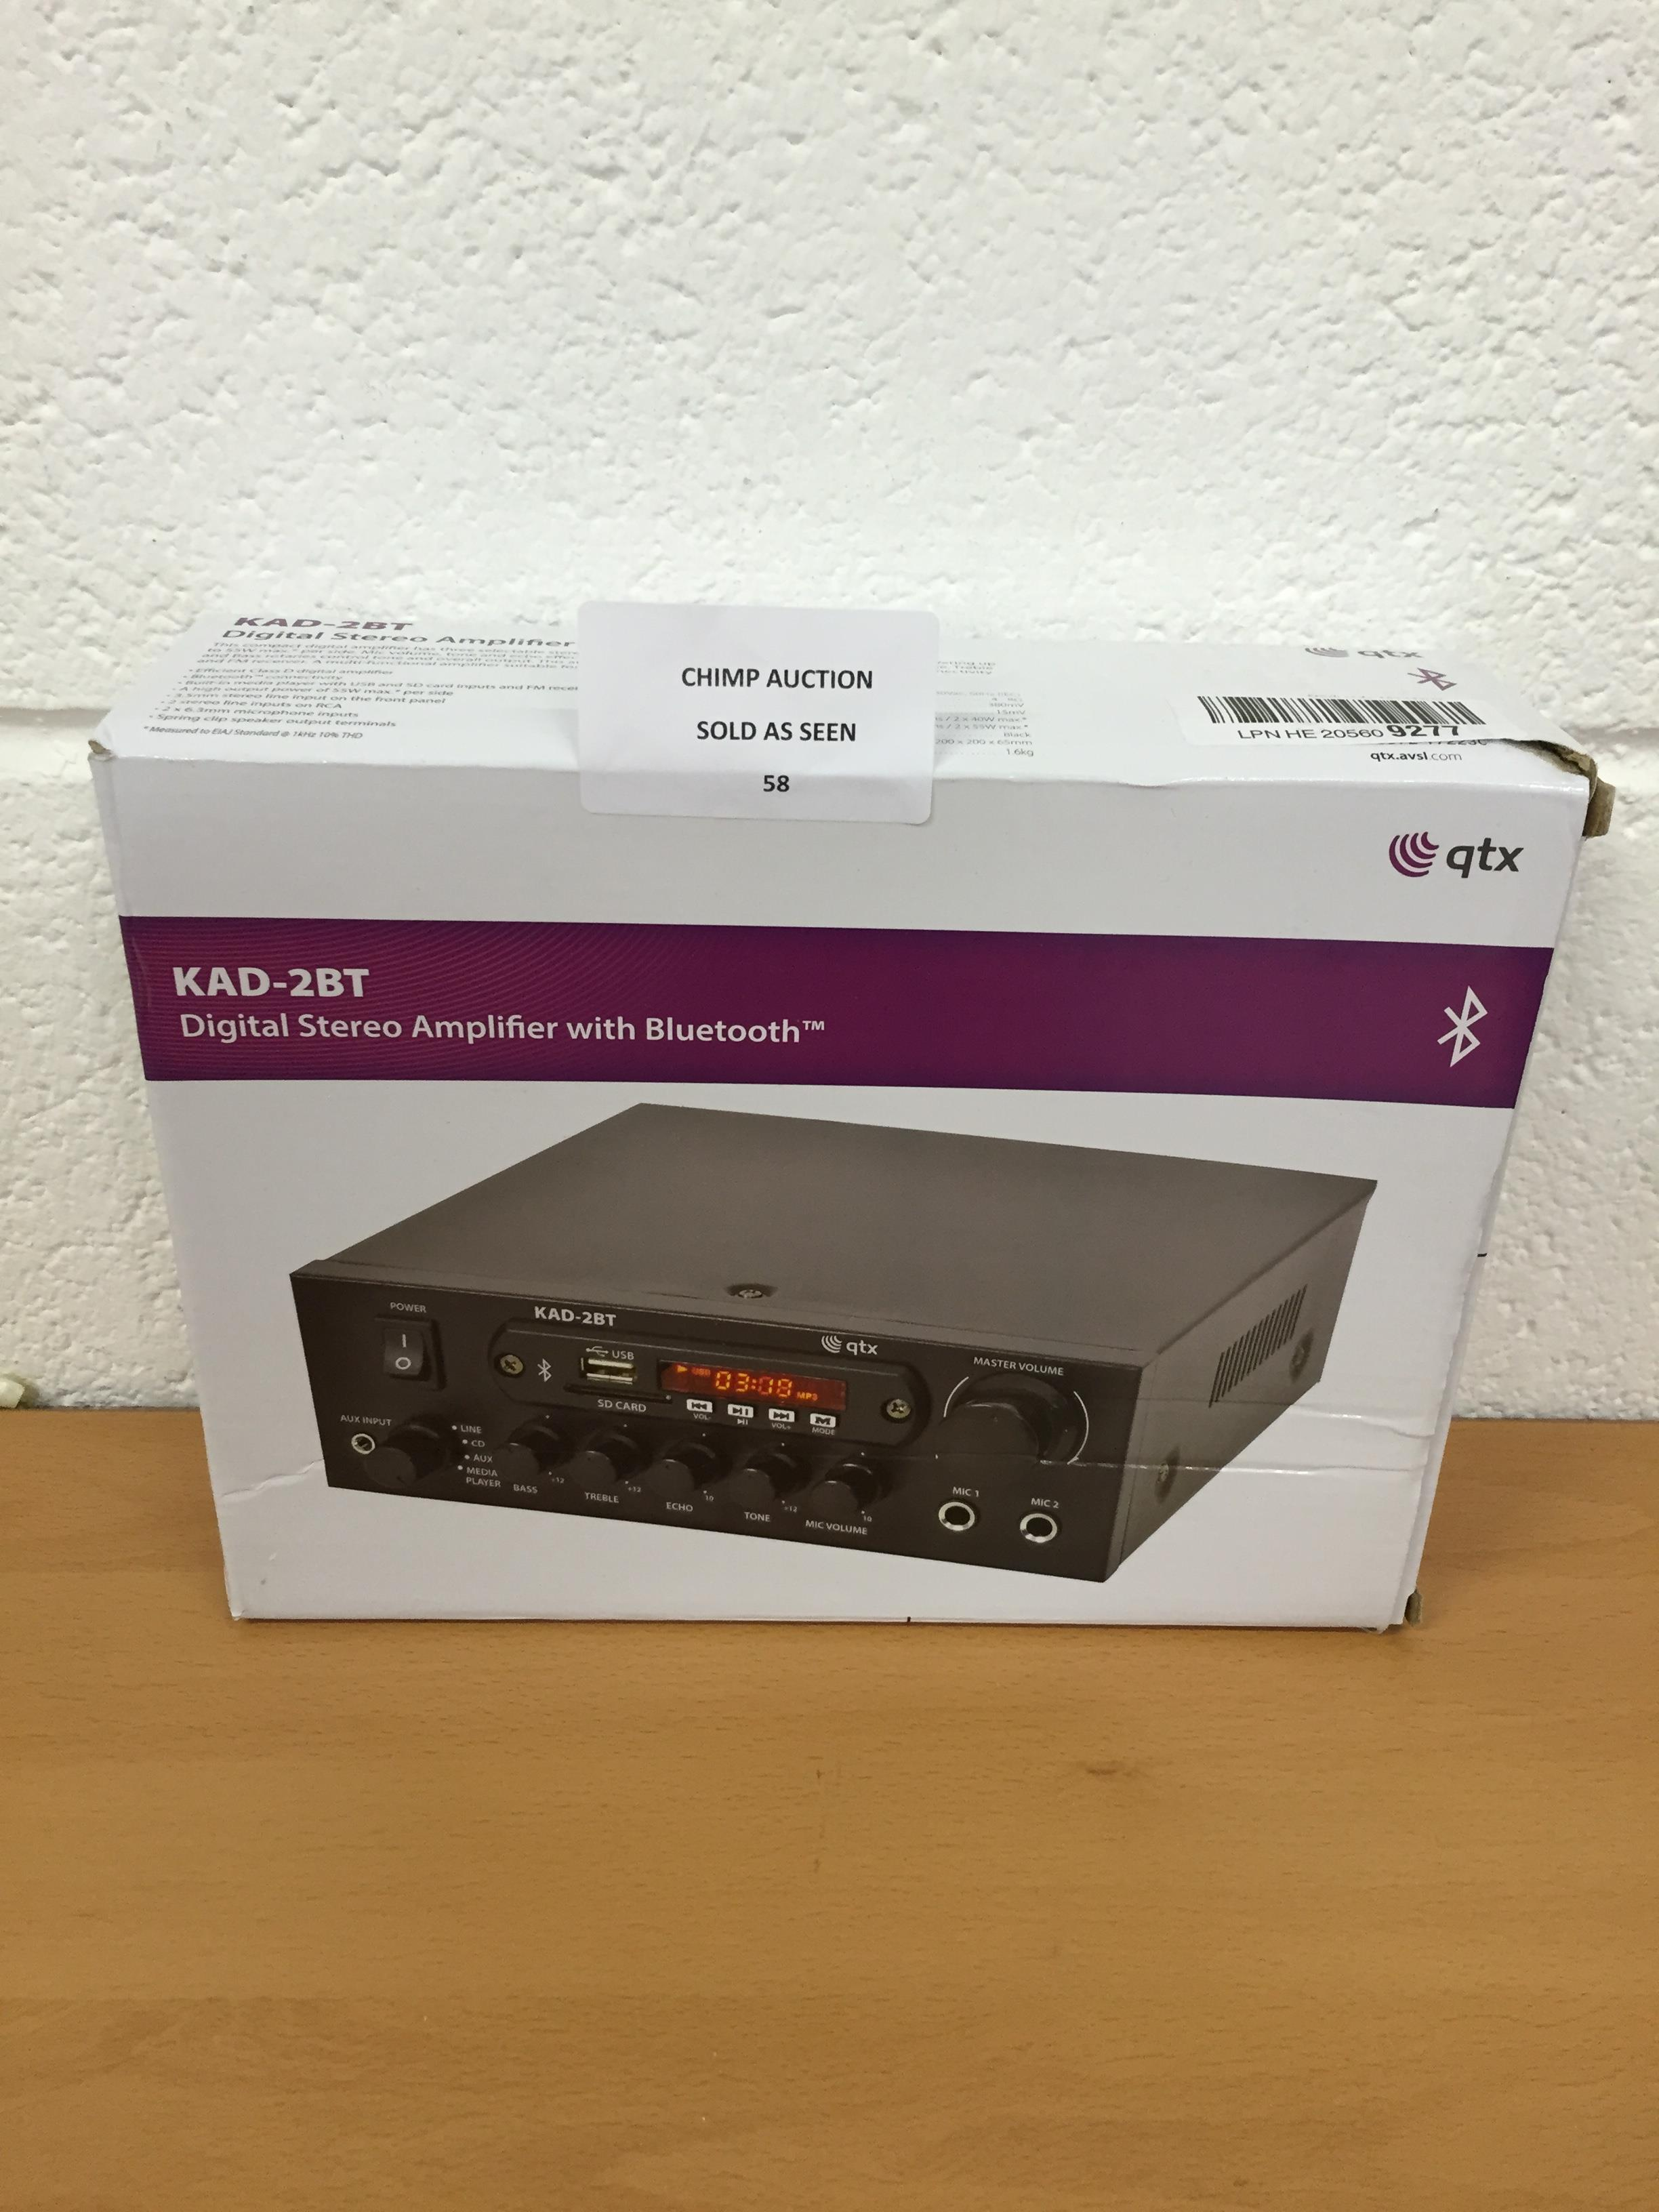 Lot 58 - QTX KAD-2BT Digital Stereo Amplifier With Bluetooth RRP £69.99.